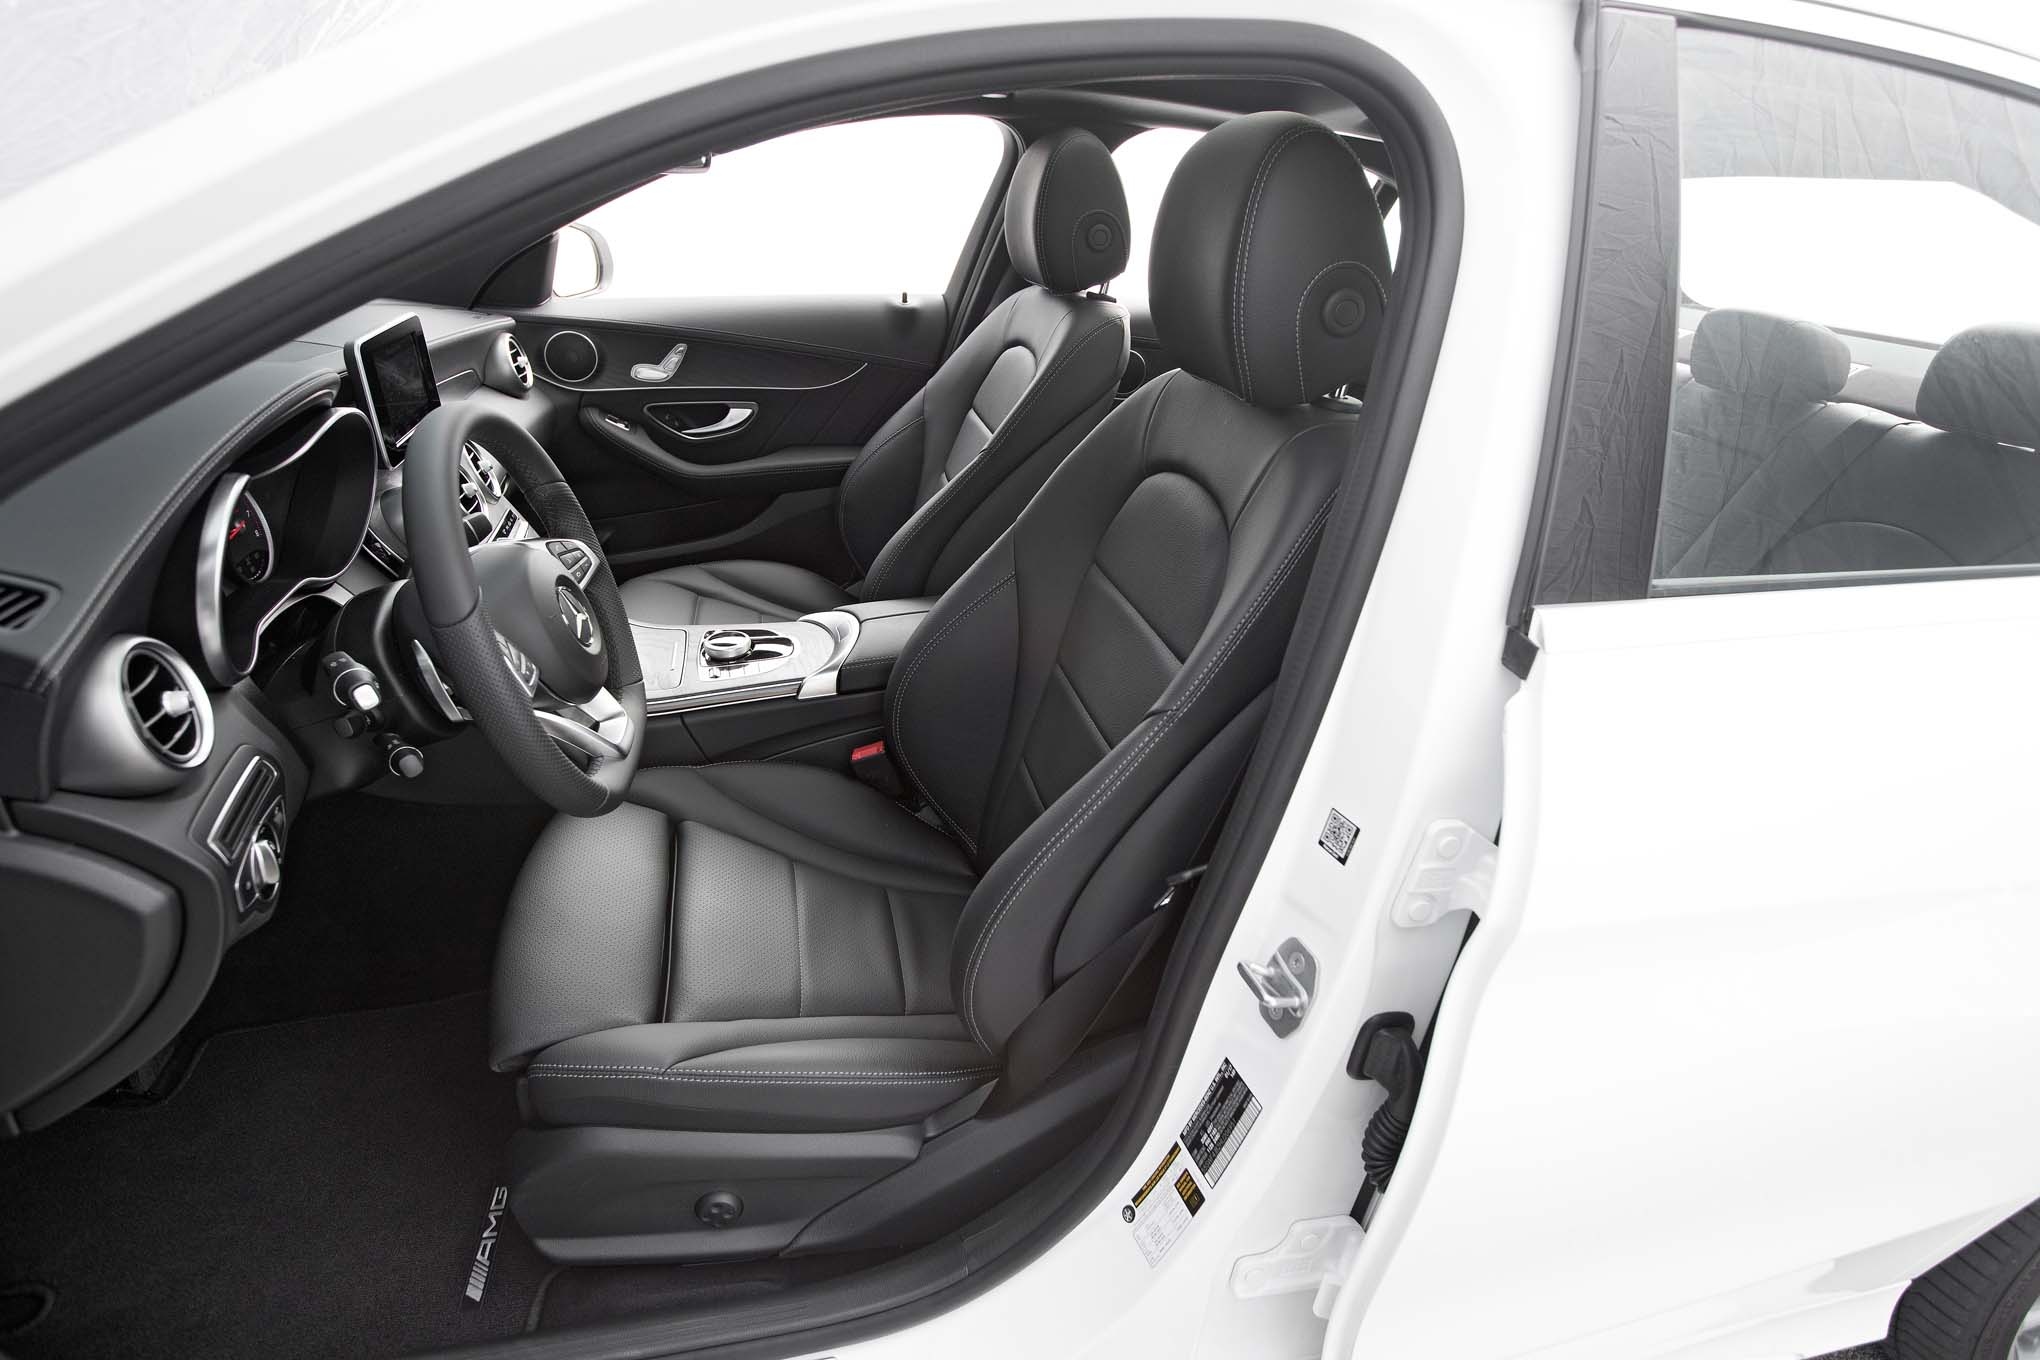 2017 Mercedes Benz C300 front interior seats